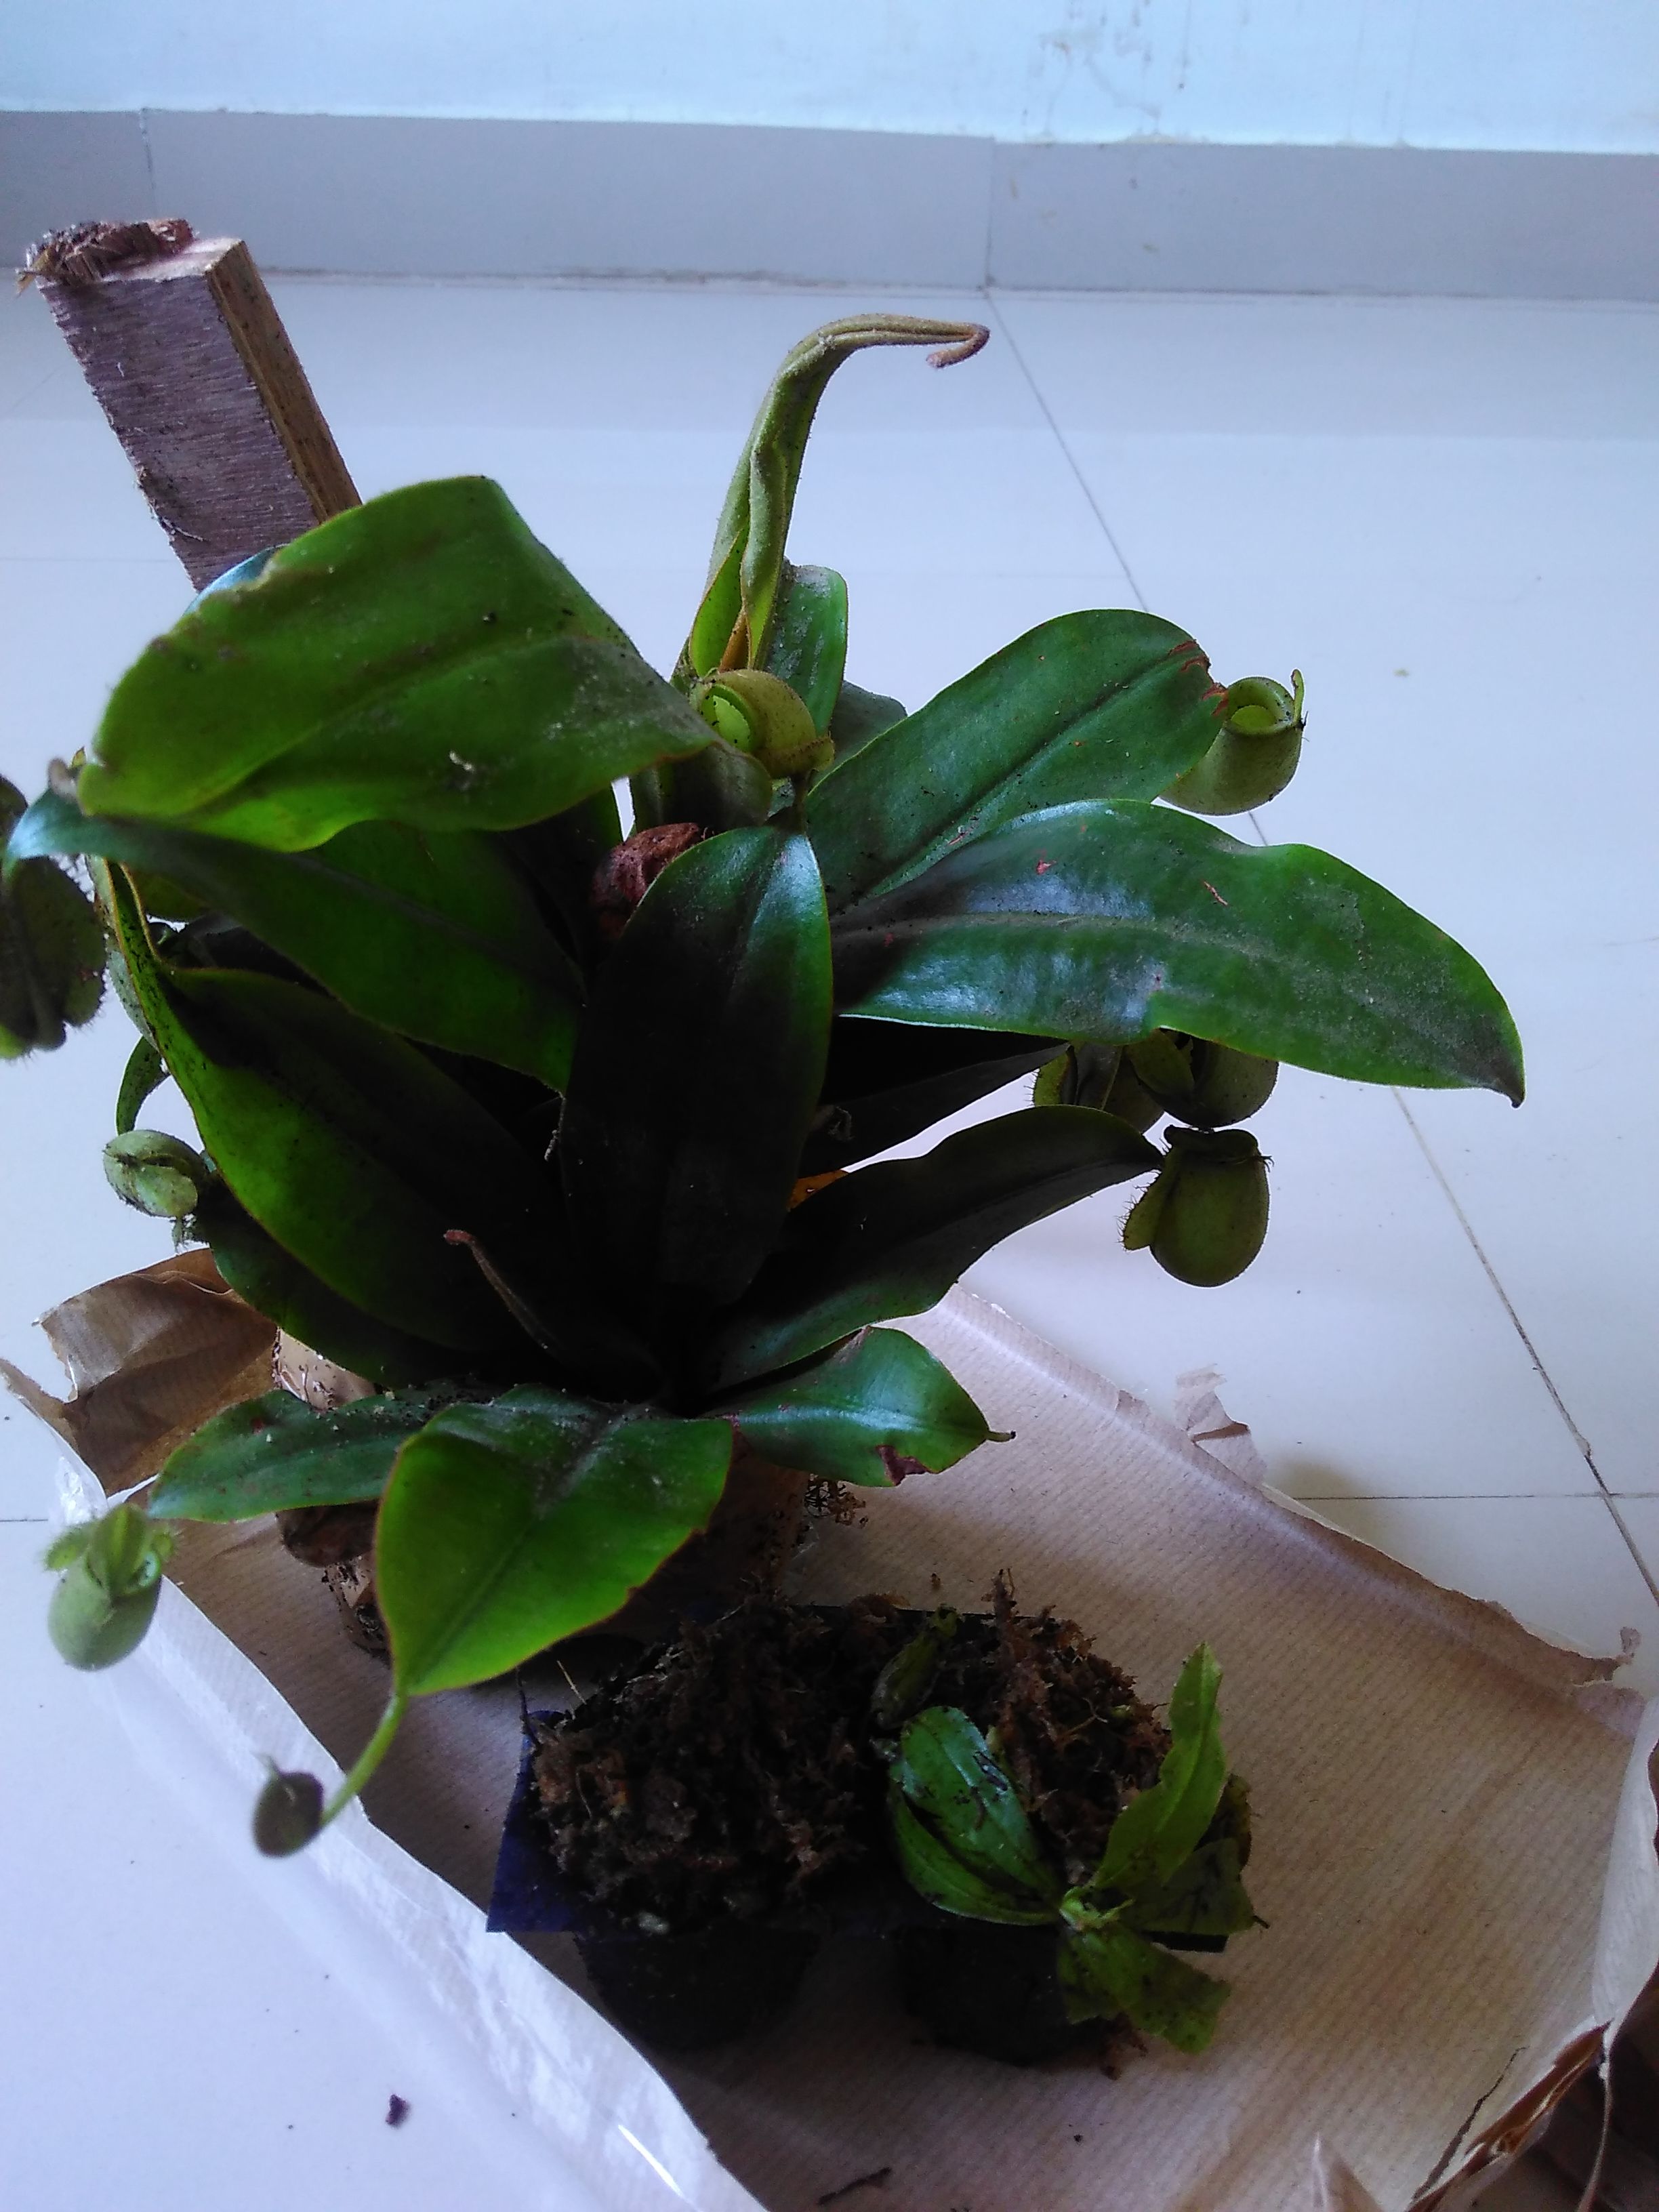 Unboxing nepenthes ampullaria